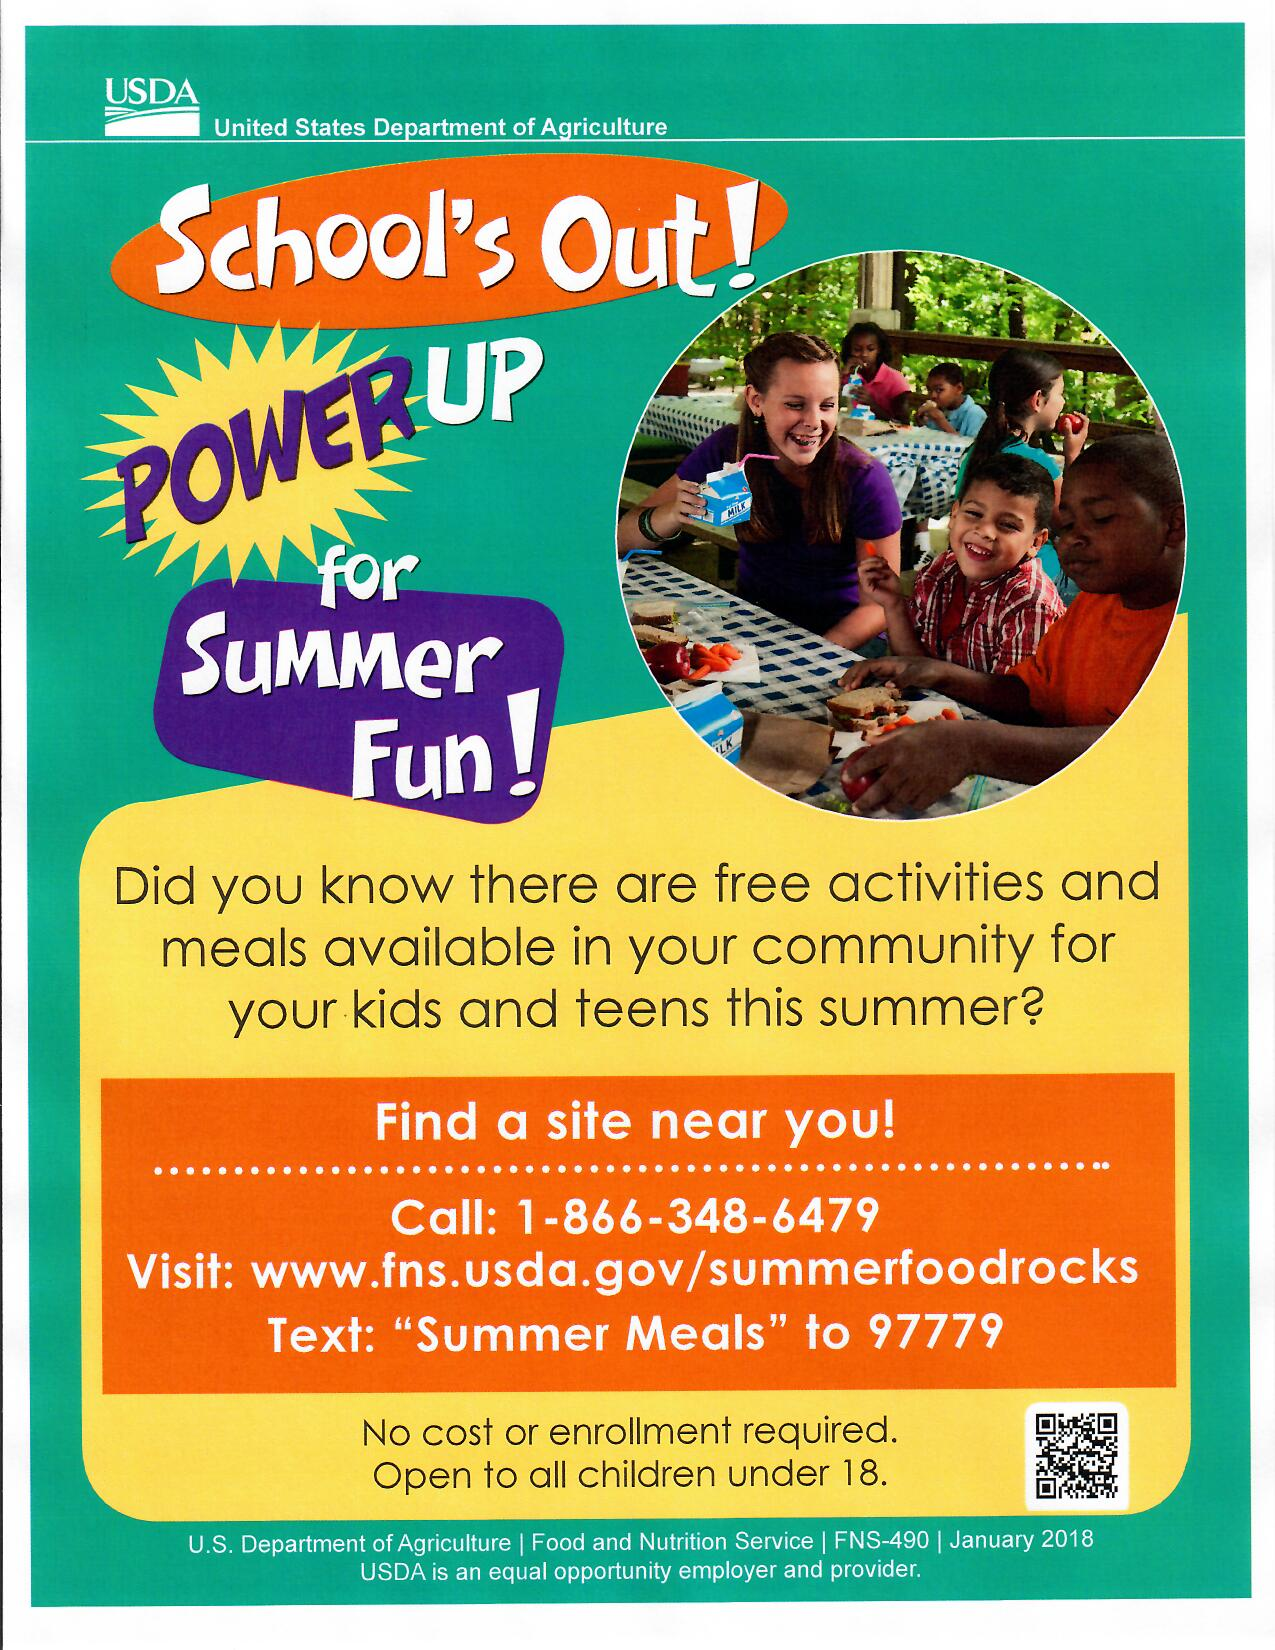 School's Out! POWER UP for Summer Fun!